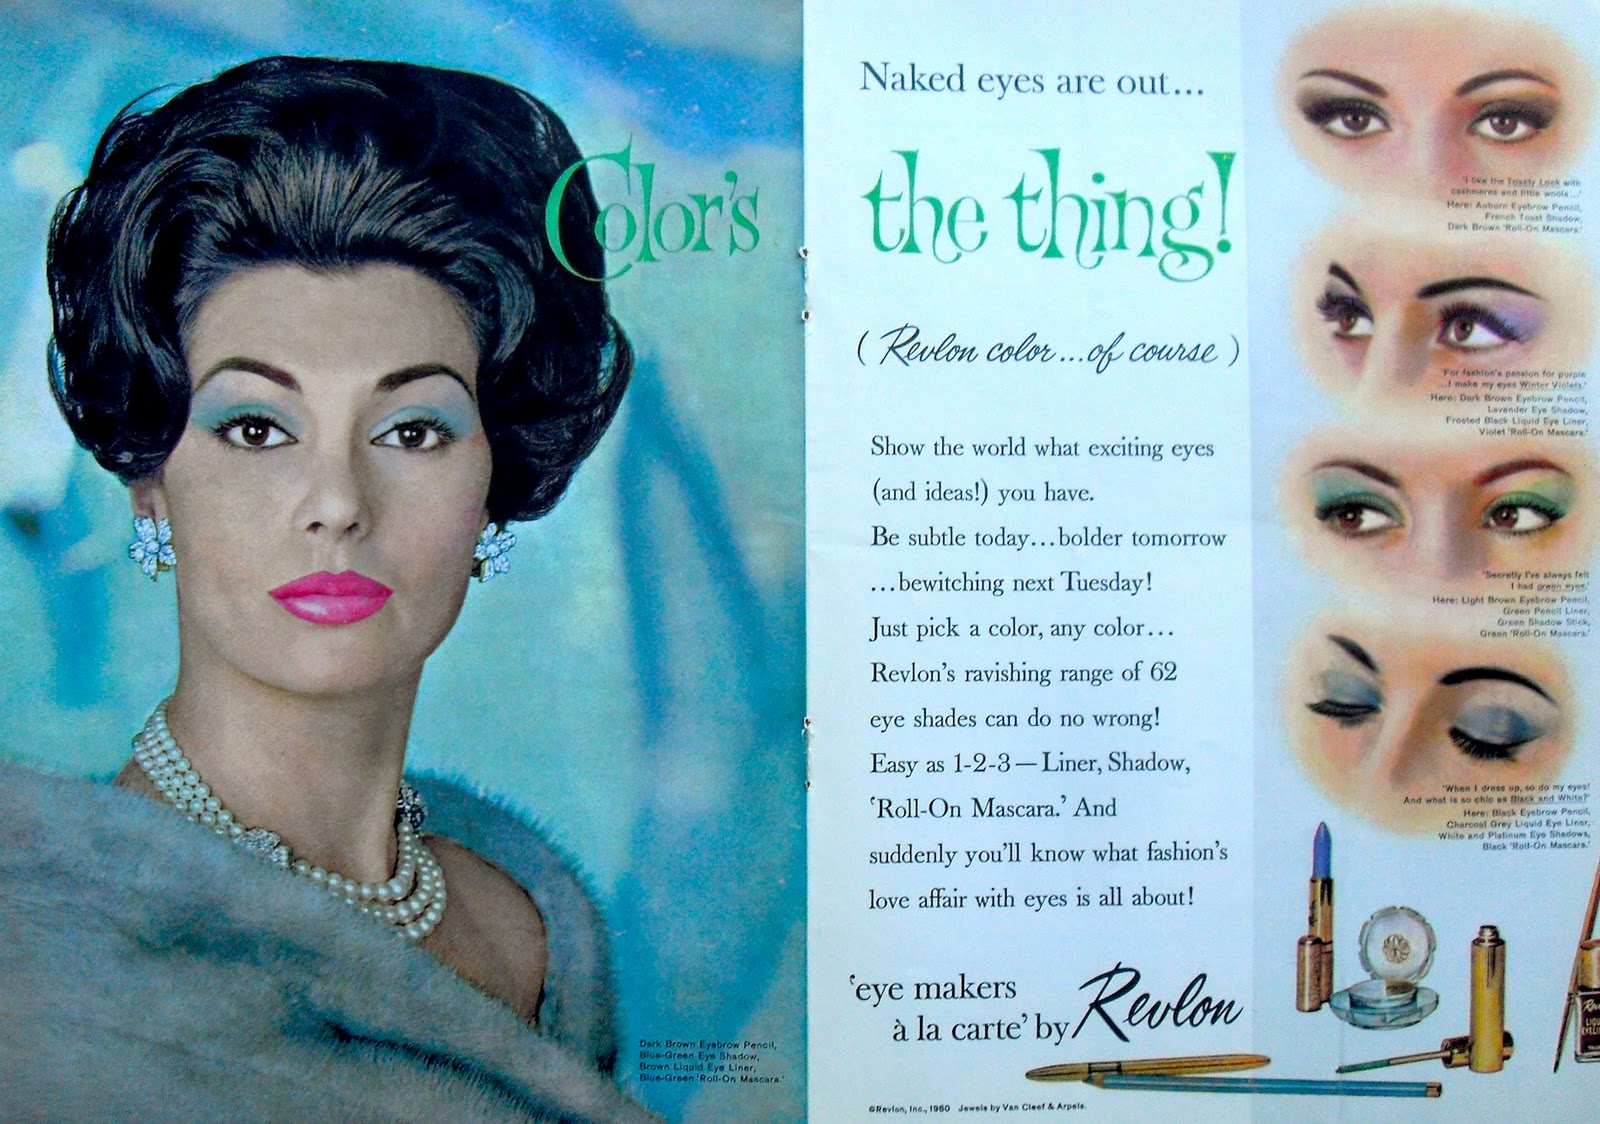 1960 REVLON COSMETICS Vintage Magazine Advertisement.jpg